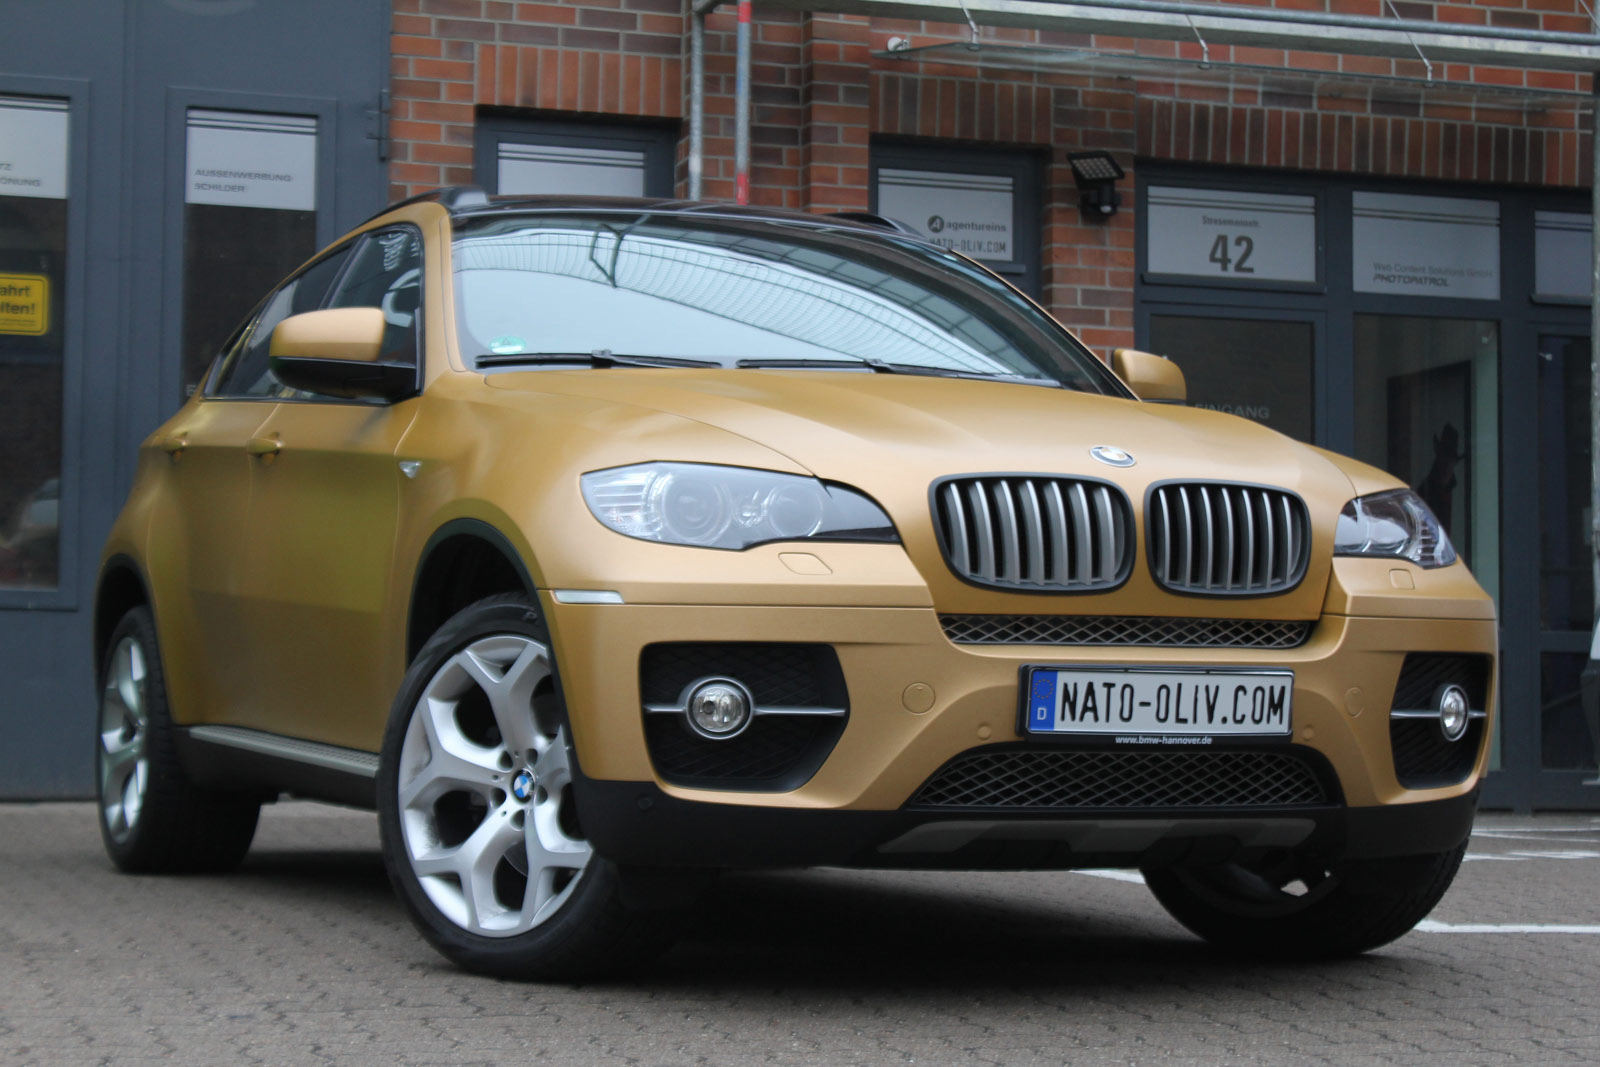 BMW_X6_VERKLEBUNG_BRUSHED_GOLD_56